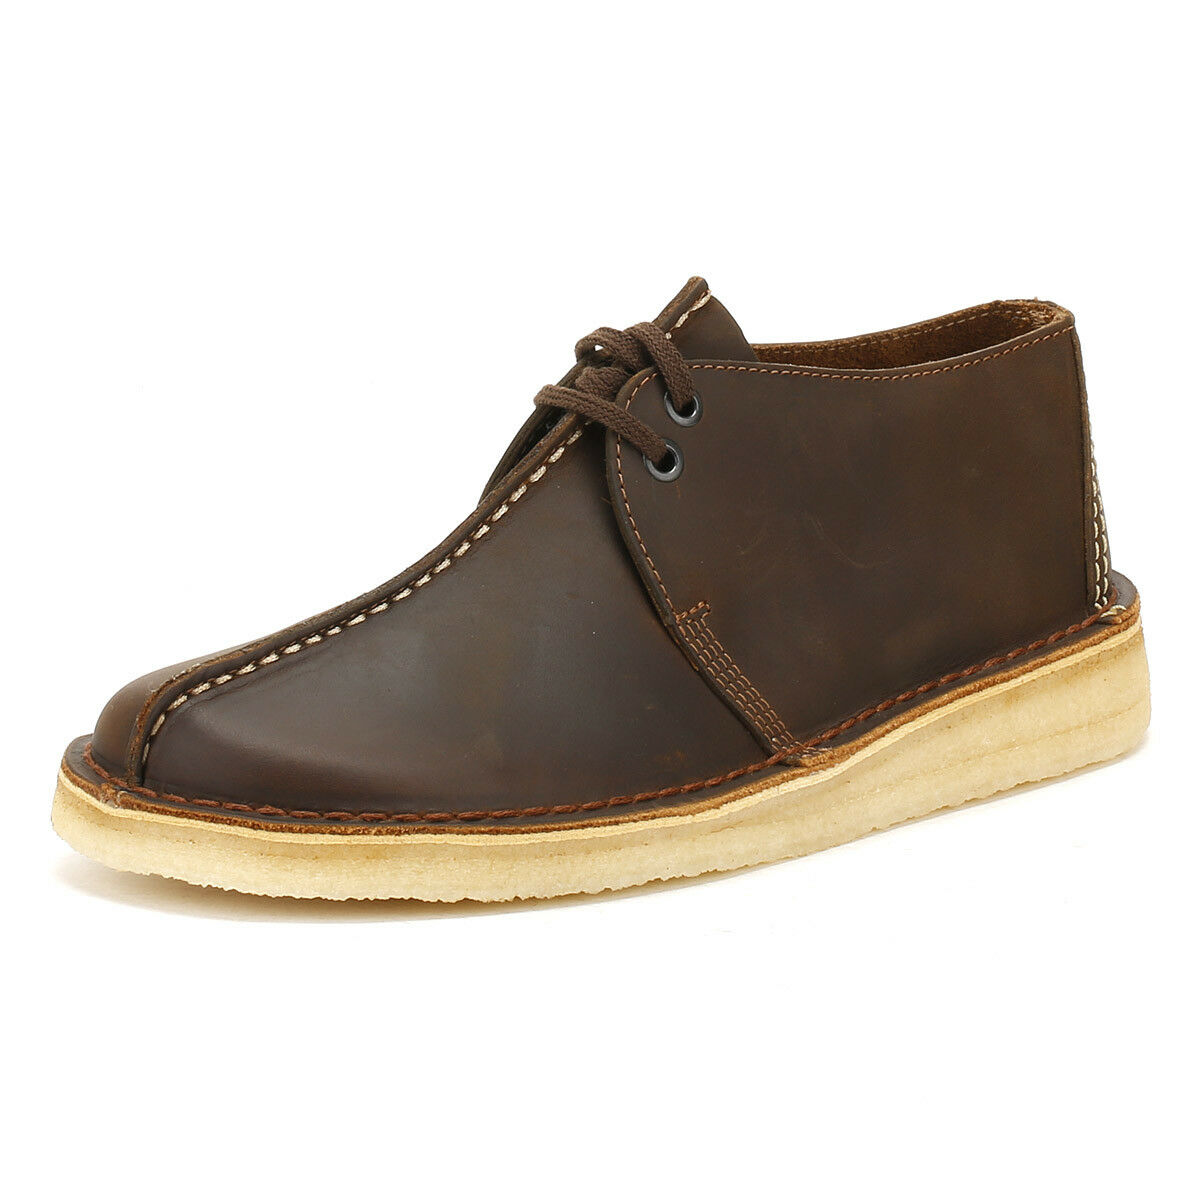 Clarks Clarks Clarks Mens Beeswax Leather Desert Trek schuhe Lace Up Smart Casual    e0d3d9